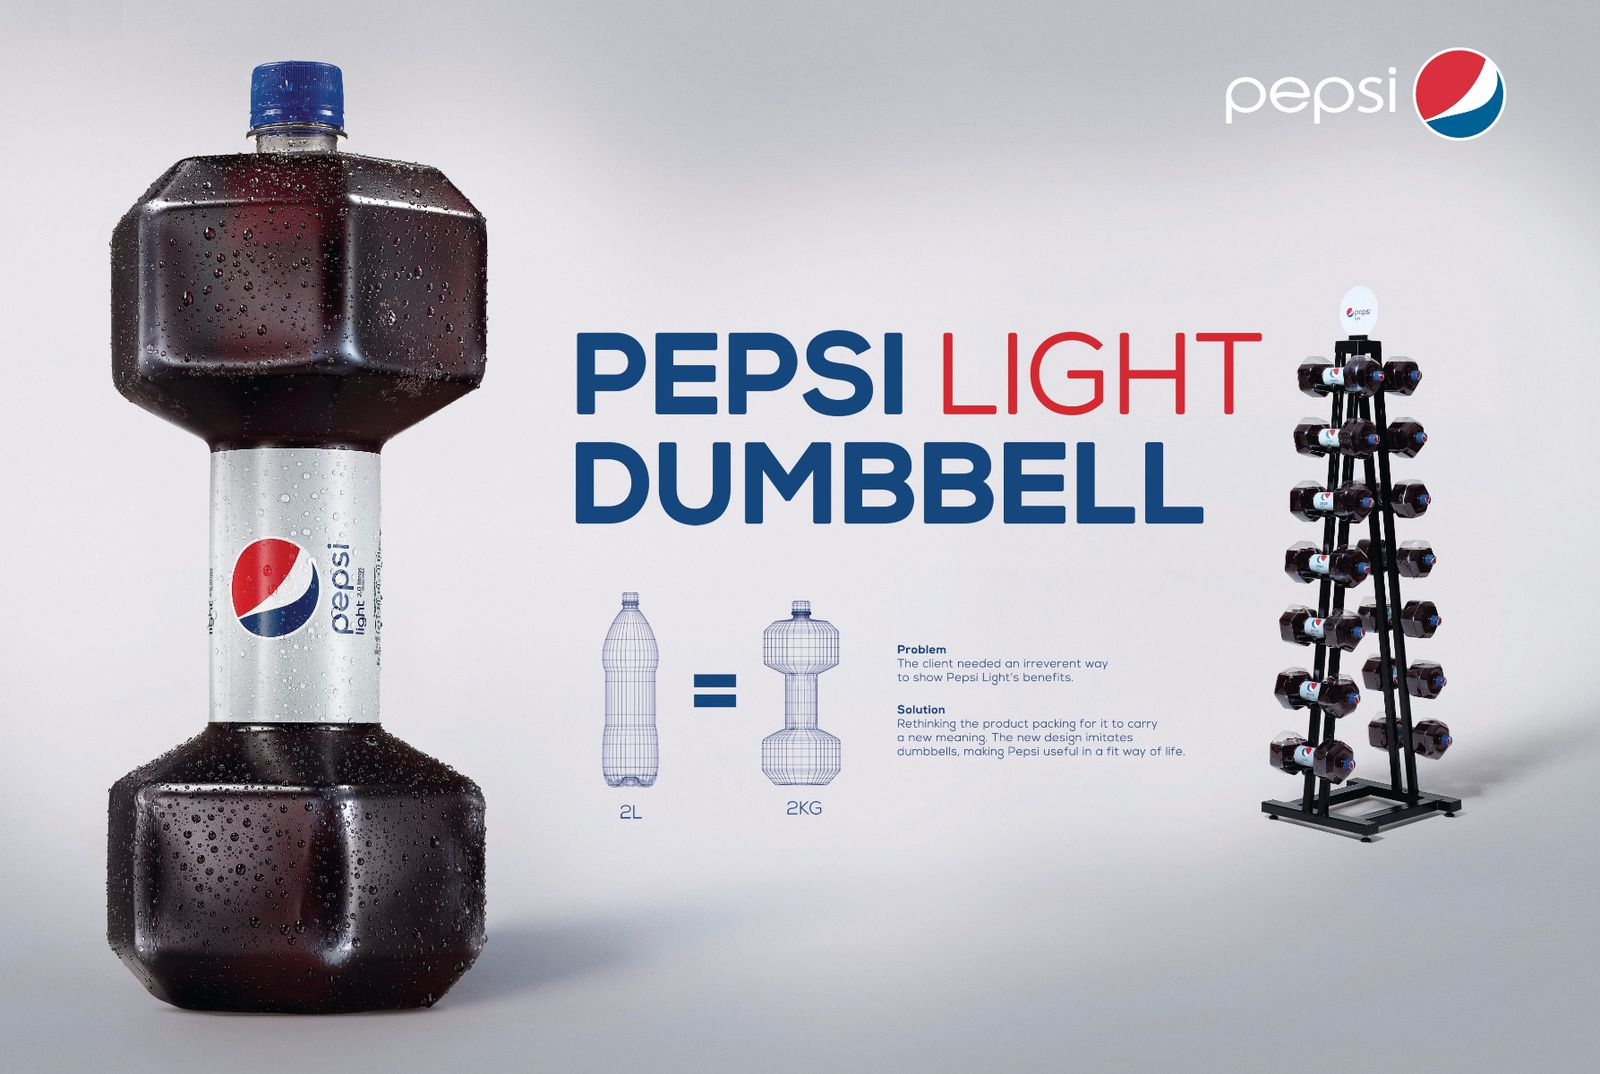 Pepsi Light Dumbbell - Pepsi (soda) | Design : AlmapBBDO, Brésil (mars 2016)